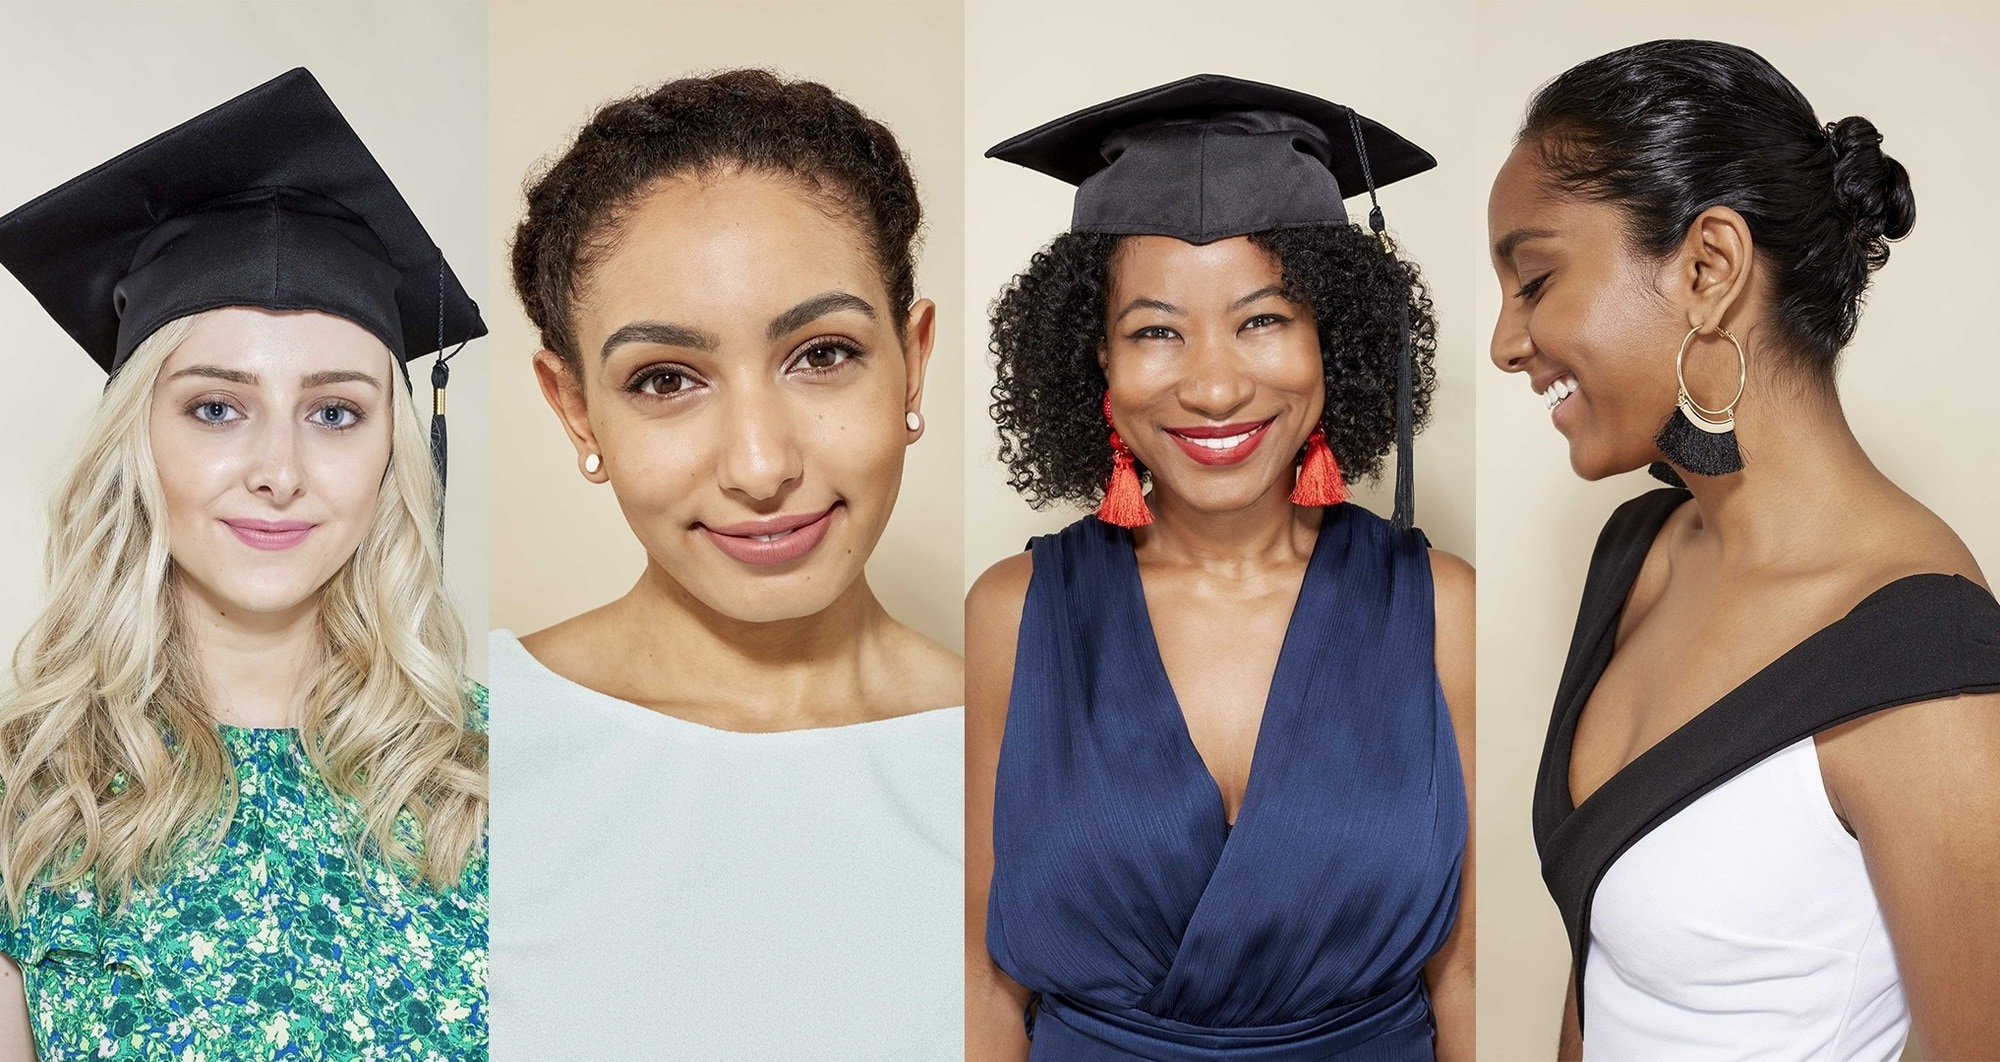 10 Graduation Hairstyles That'll Look Fabulous Under Your Cap For Graduation Cap Hairstyles For Short Hair (View 25 of 25)